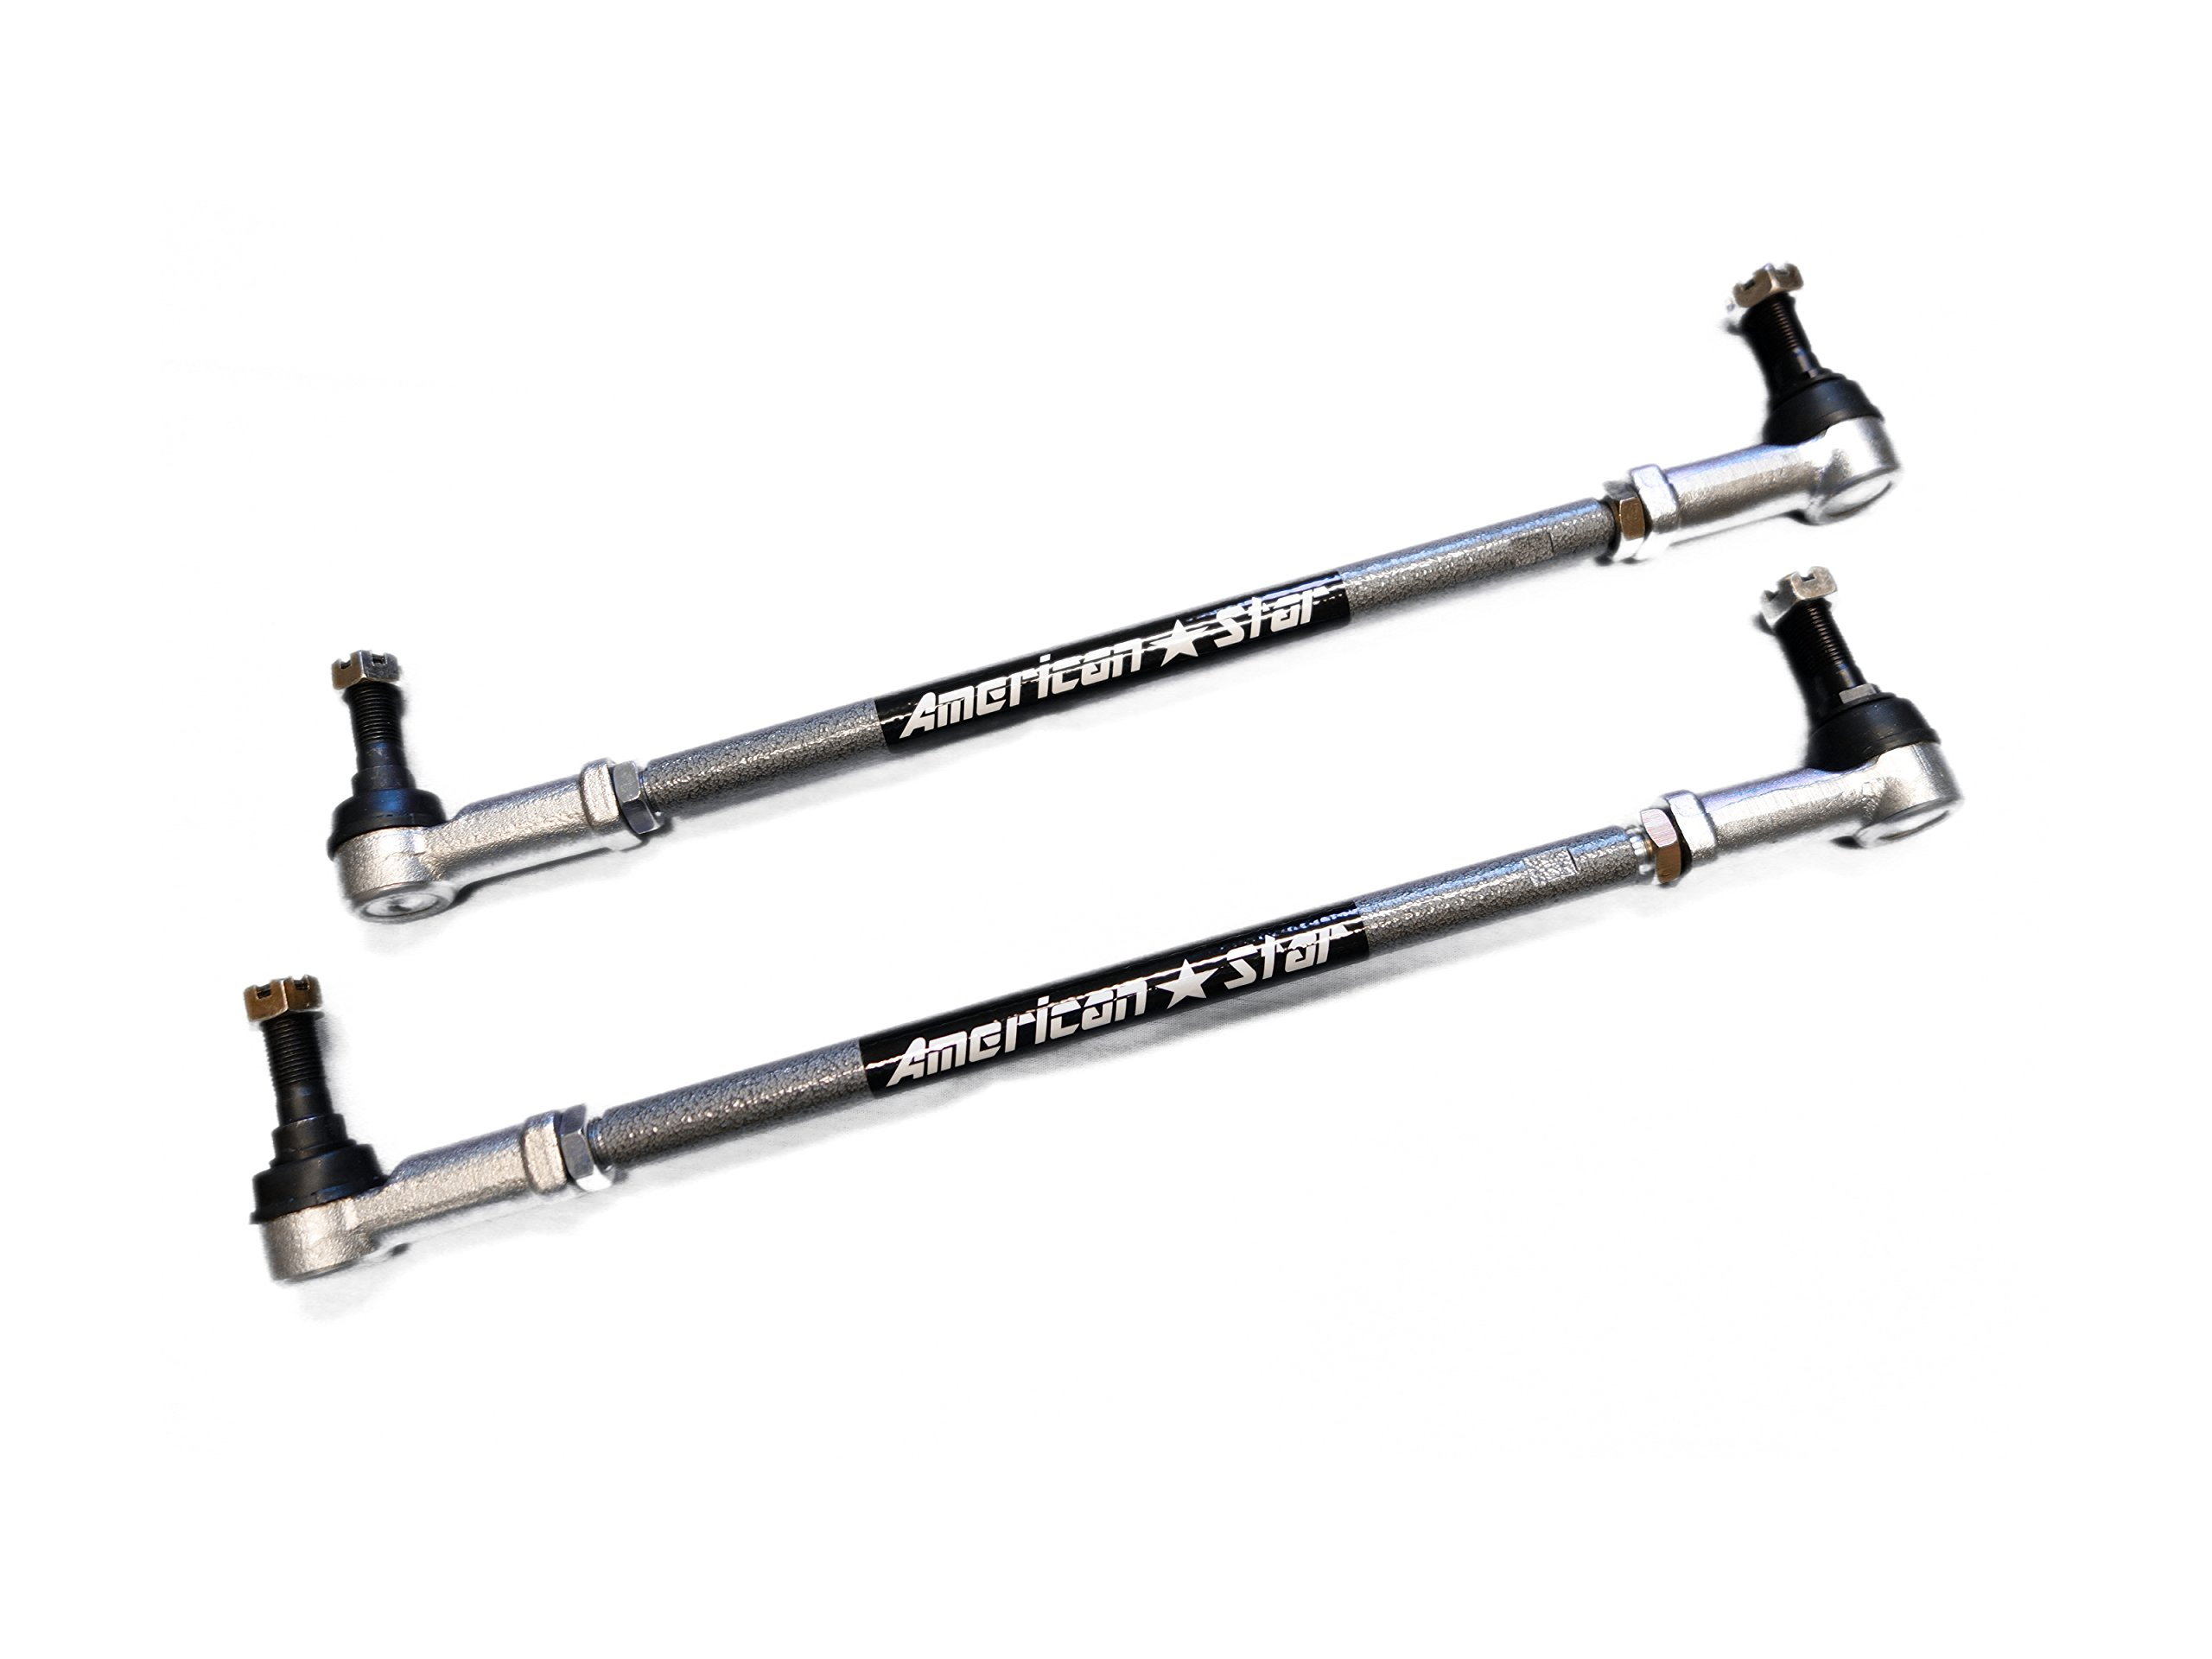 American Star 4130 Chromoly Tie Rod Upgrade Kit for 05-07 Suzuki LTA-700X King Quad and 07-10 Suzuki LTA-450X King Quad by Unknown